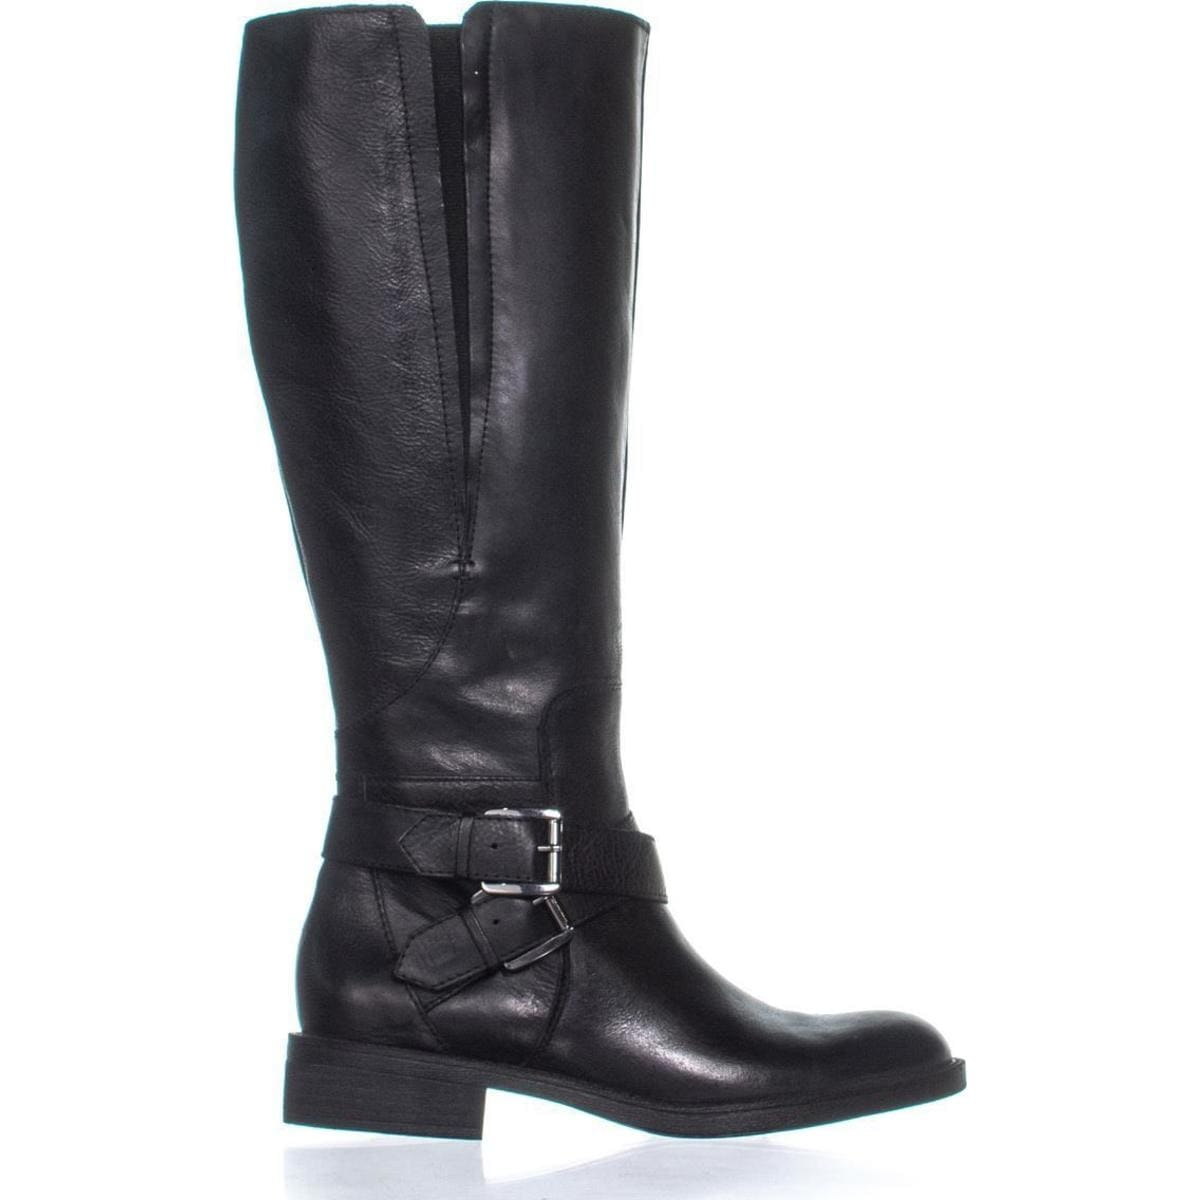 22b7c3ea2874 Shop Enzo Angiolini Scarly Wide Calf Knee-High Boots